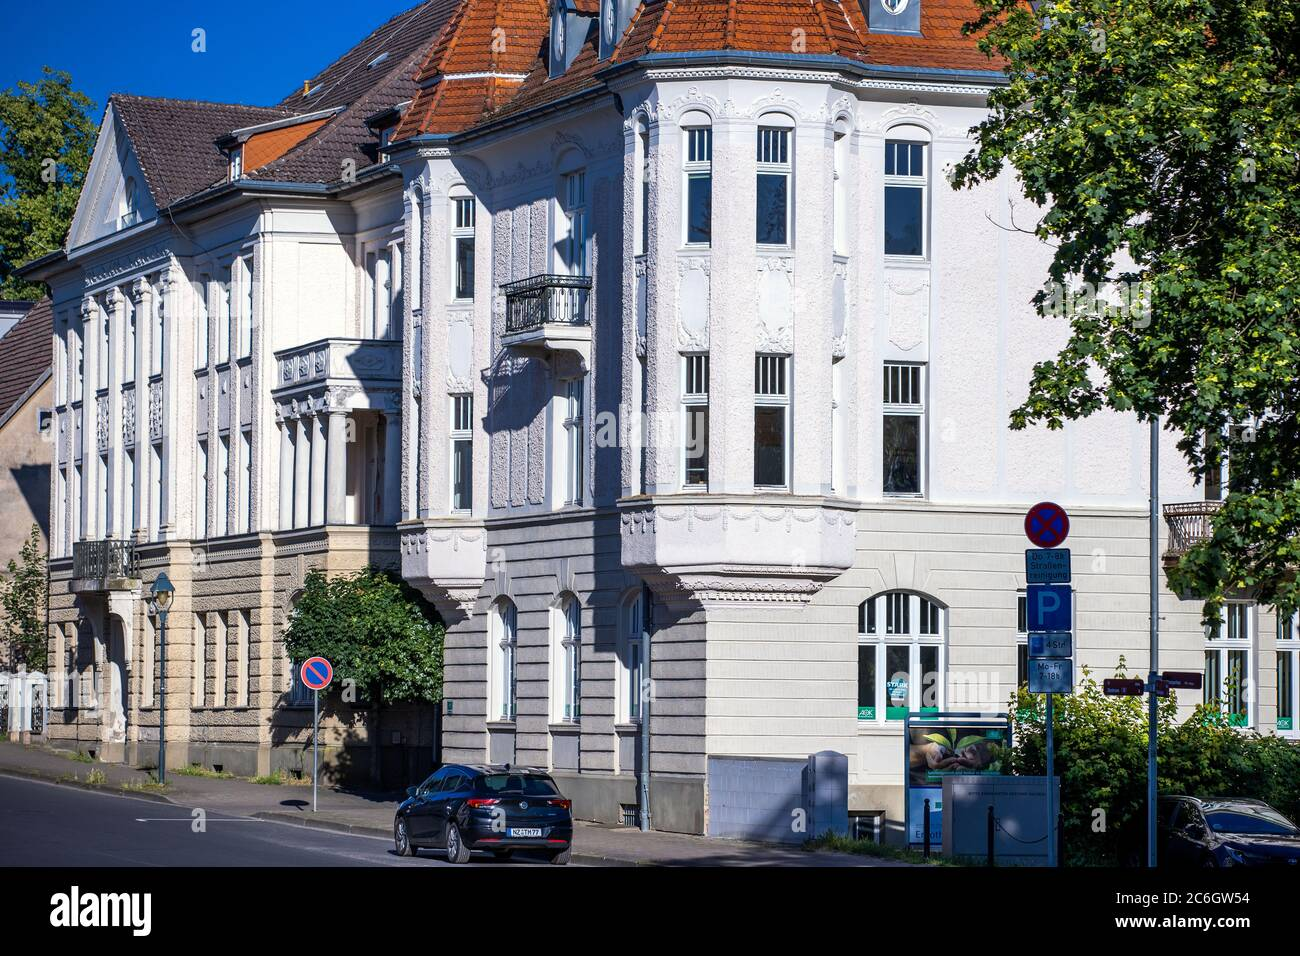 Neustrelitz, Germany. 23rd June, 2020. Residential and commercial buildings in the Tiergartenstraße. Credit: Jens Büttner/dpa-Zentralbild/ZB/dpa/Alamy Live News Stock Photo